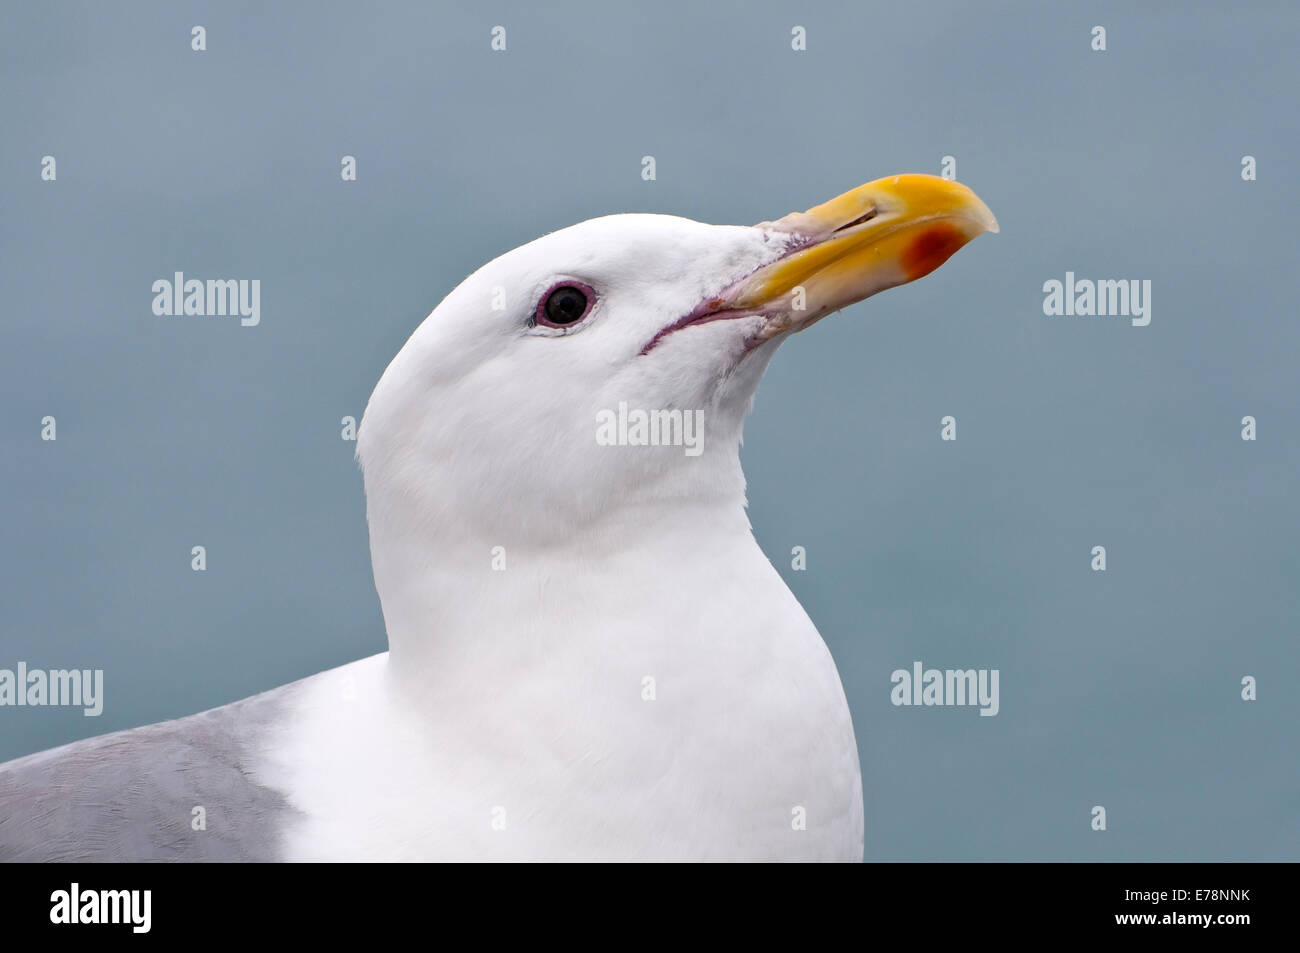 Thayer's gull , Larus thayer, Alaska, USA - Stock Image